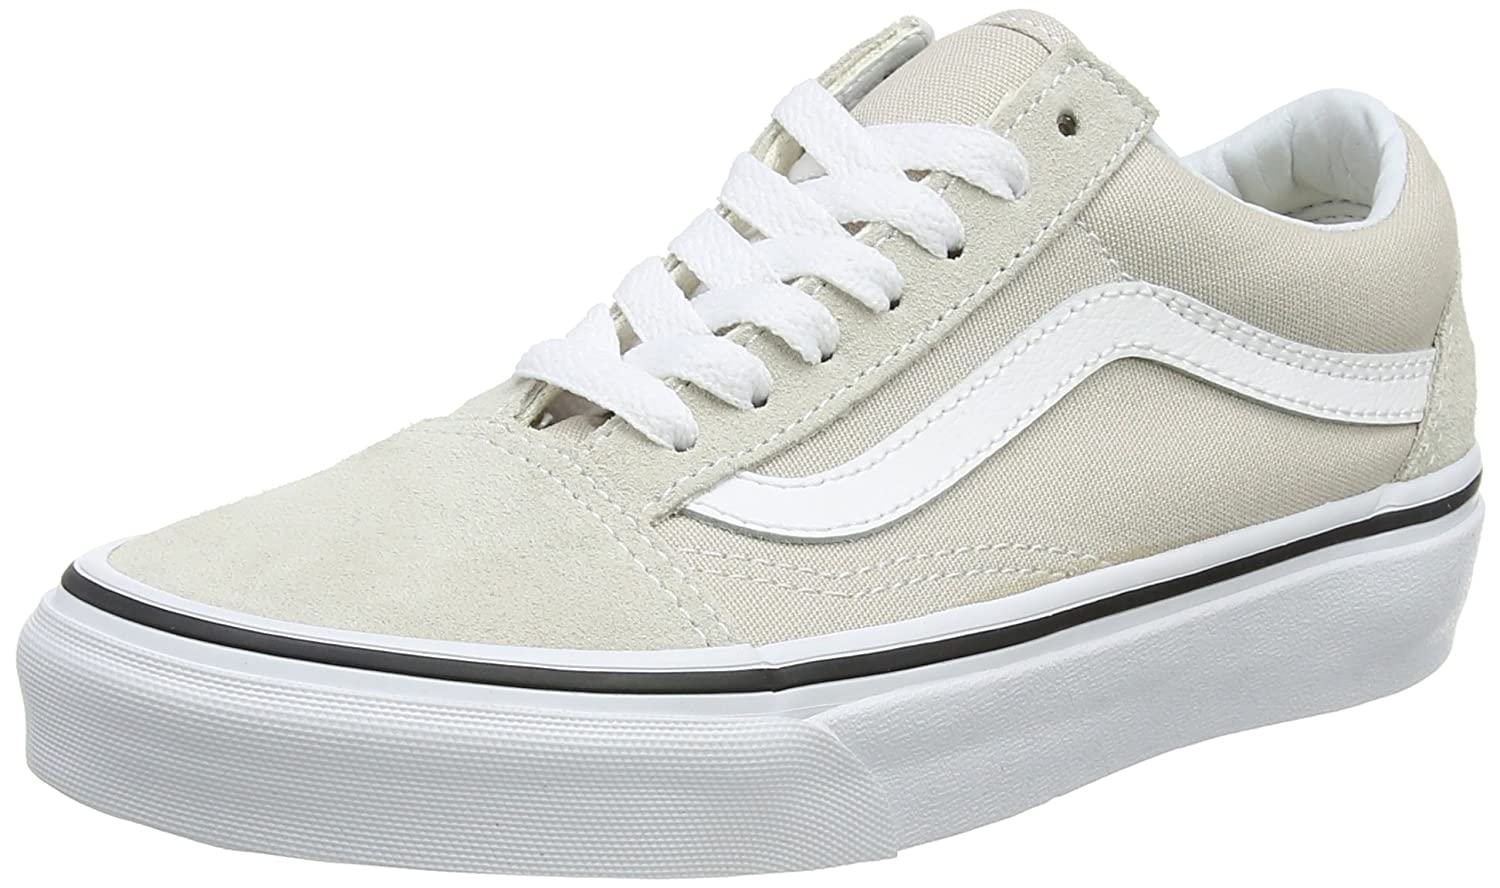 f5c0c35dbf90c6 Vans Old Skool Shoes 6.5 B(M) US Women 5 D(M) US Silver Lining True White   Amazon.com.au  Fashion